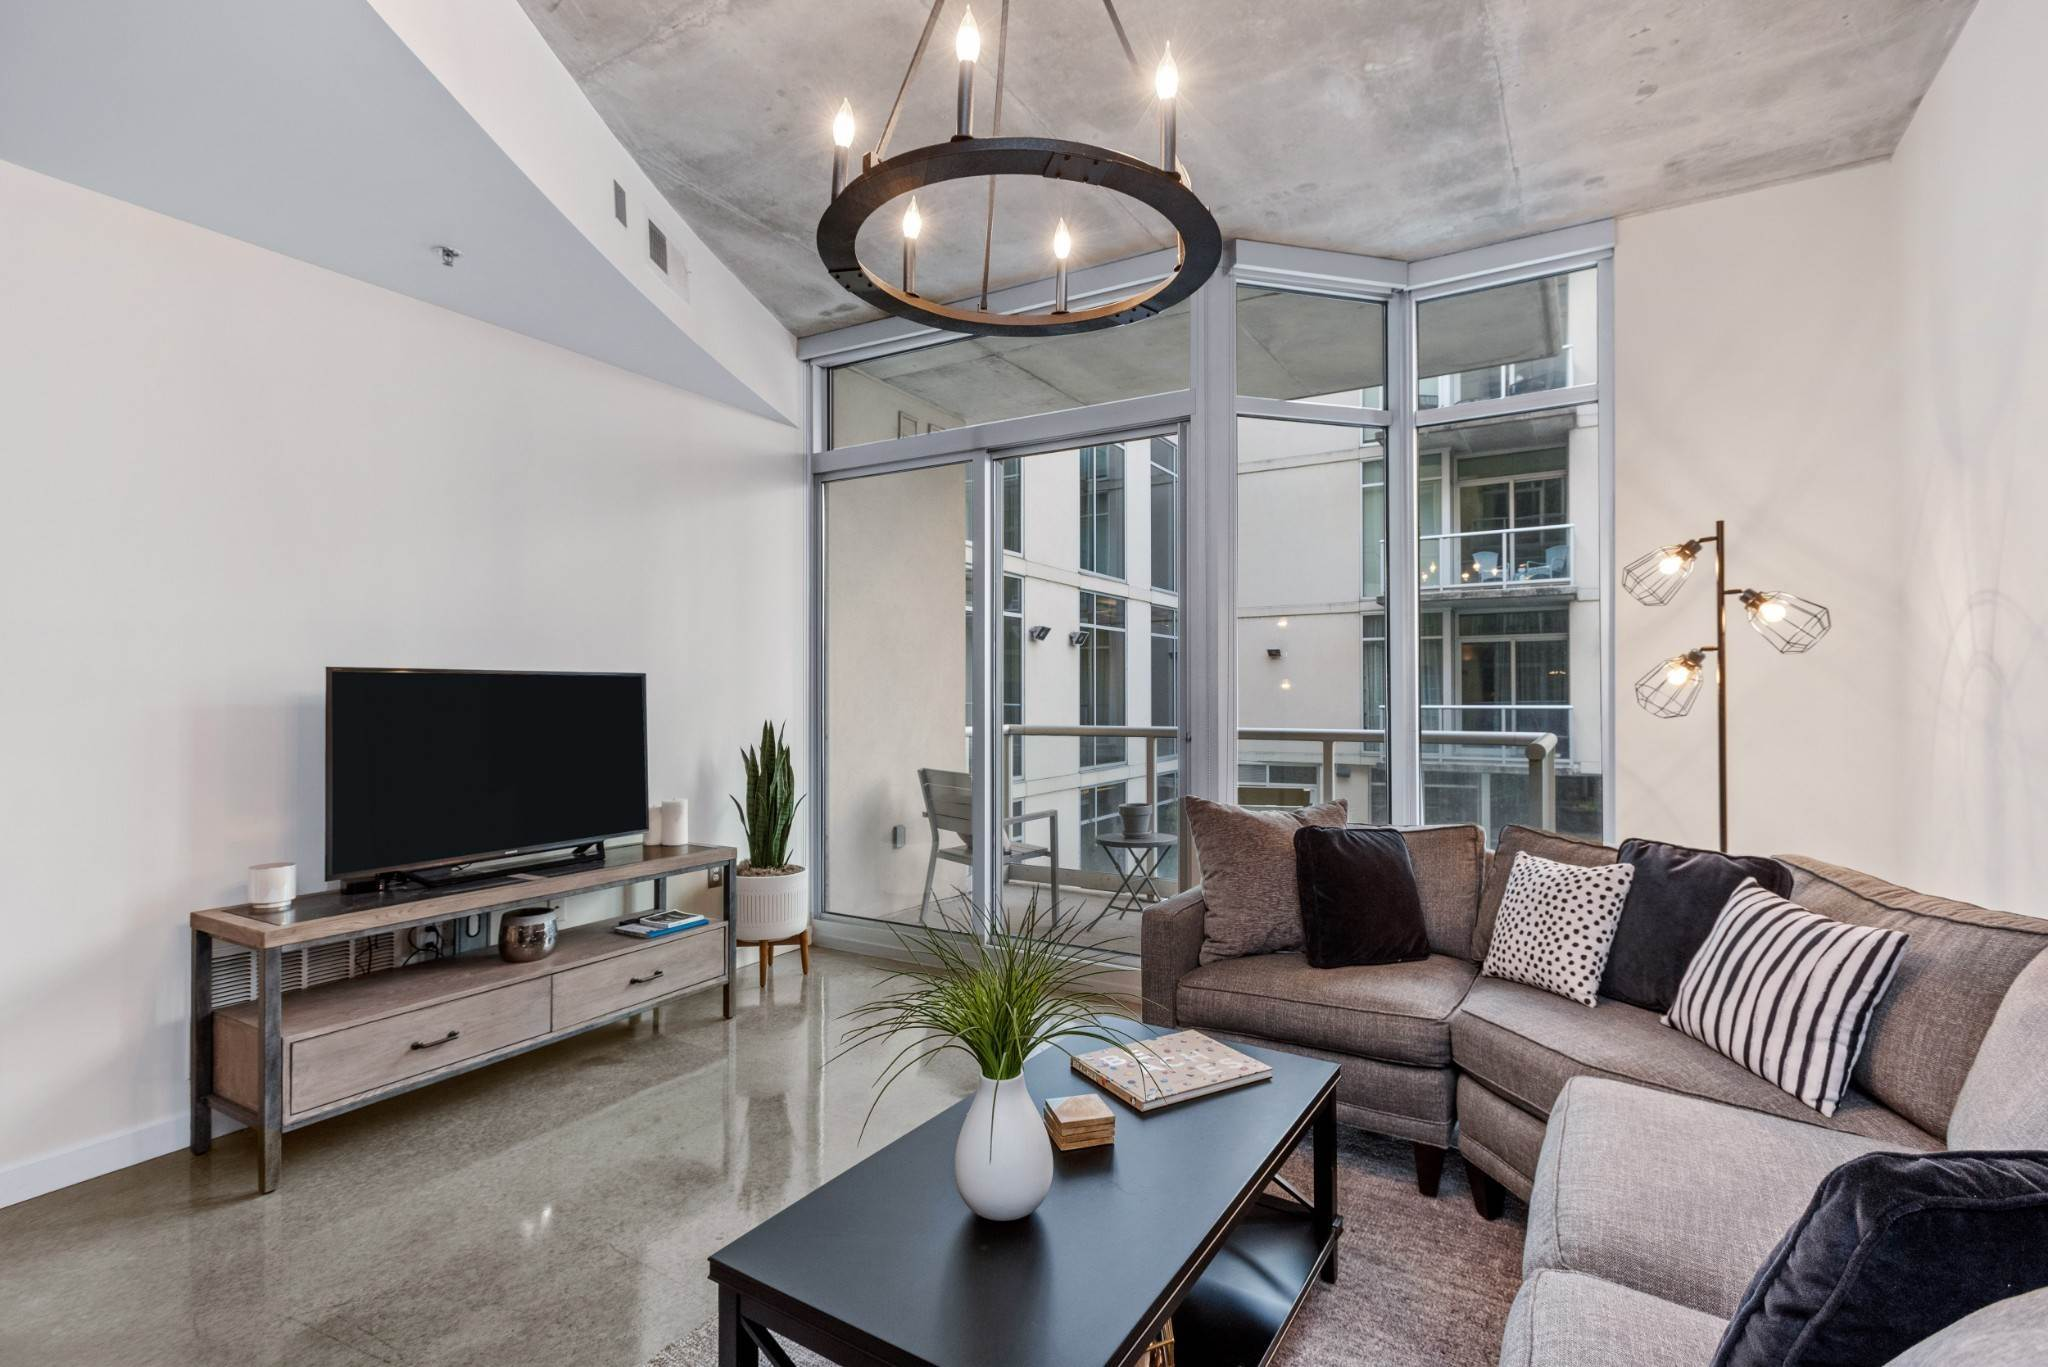 6. High Rise for Sale at 600 12th Ave S #521 Nashville, Tennessee 37203 United States